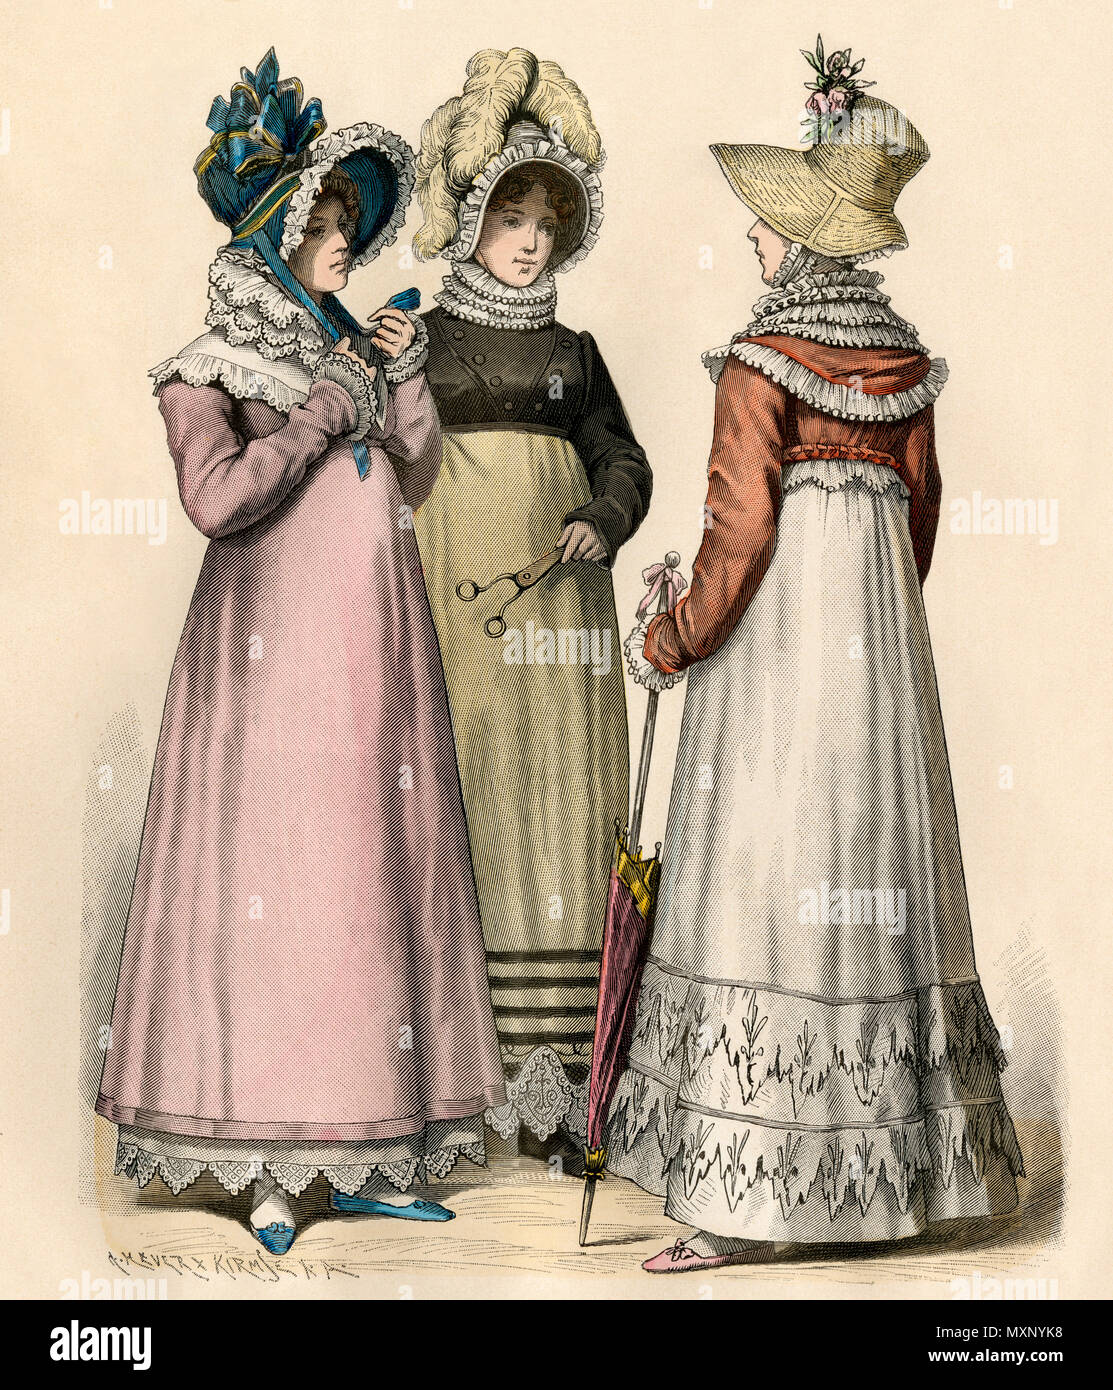 Ladies in fashions of 1814. Hand-colored print - Stock Image